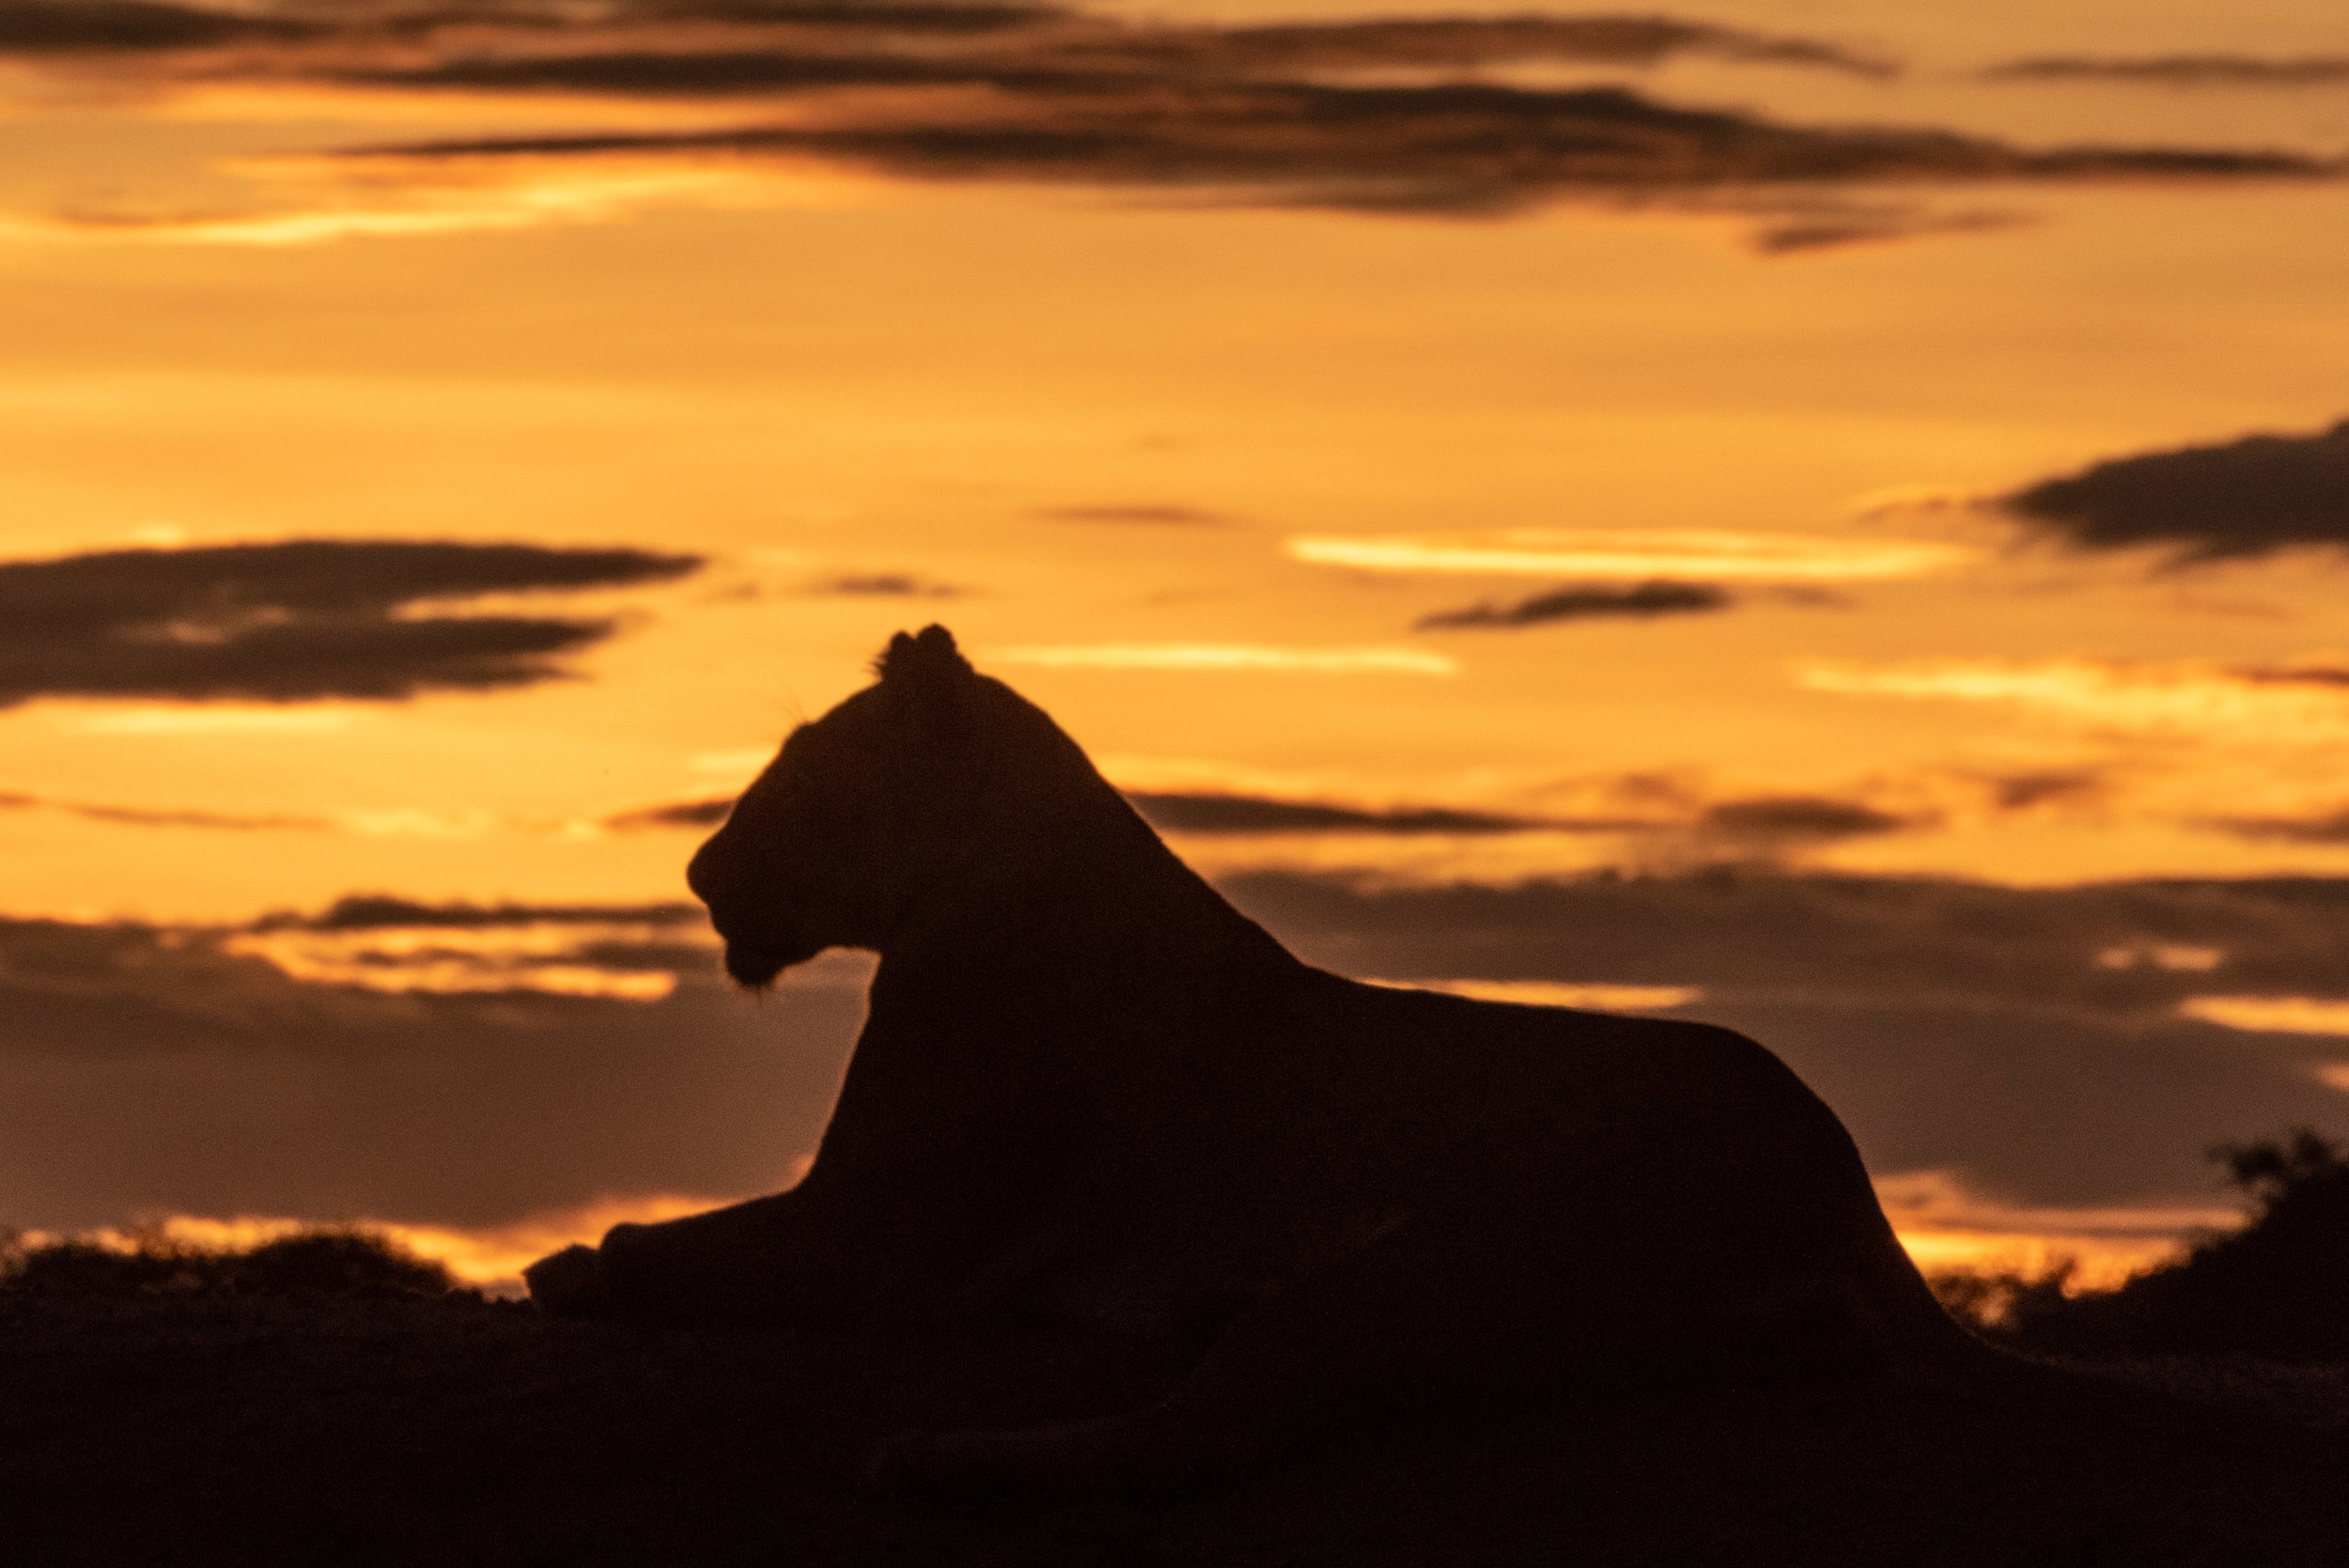 Silhouette of lioness in profile at sunrise